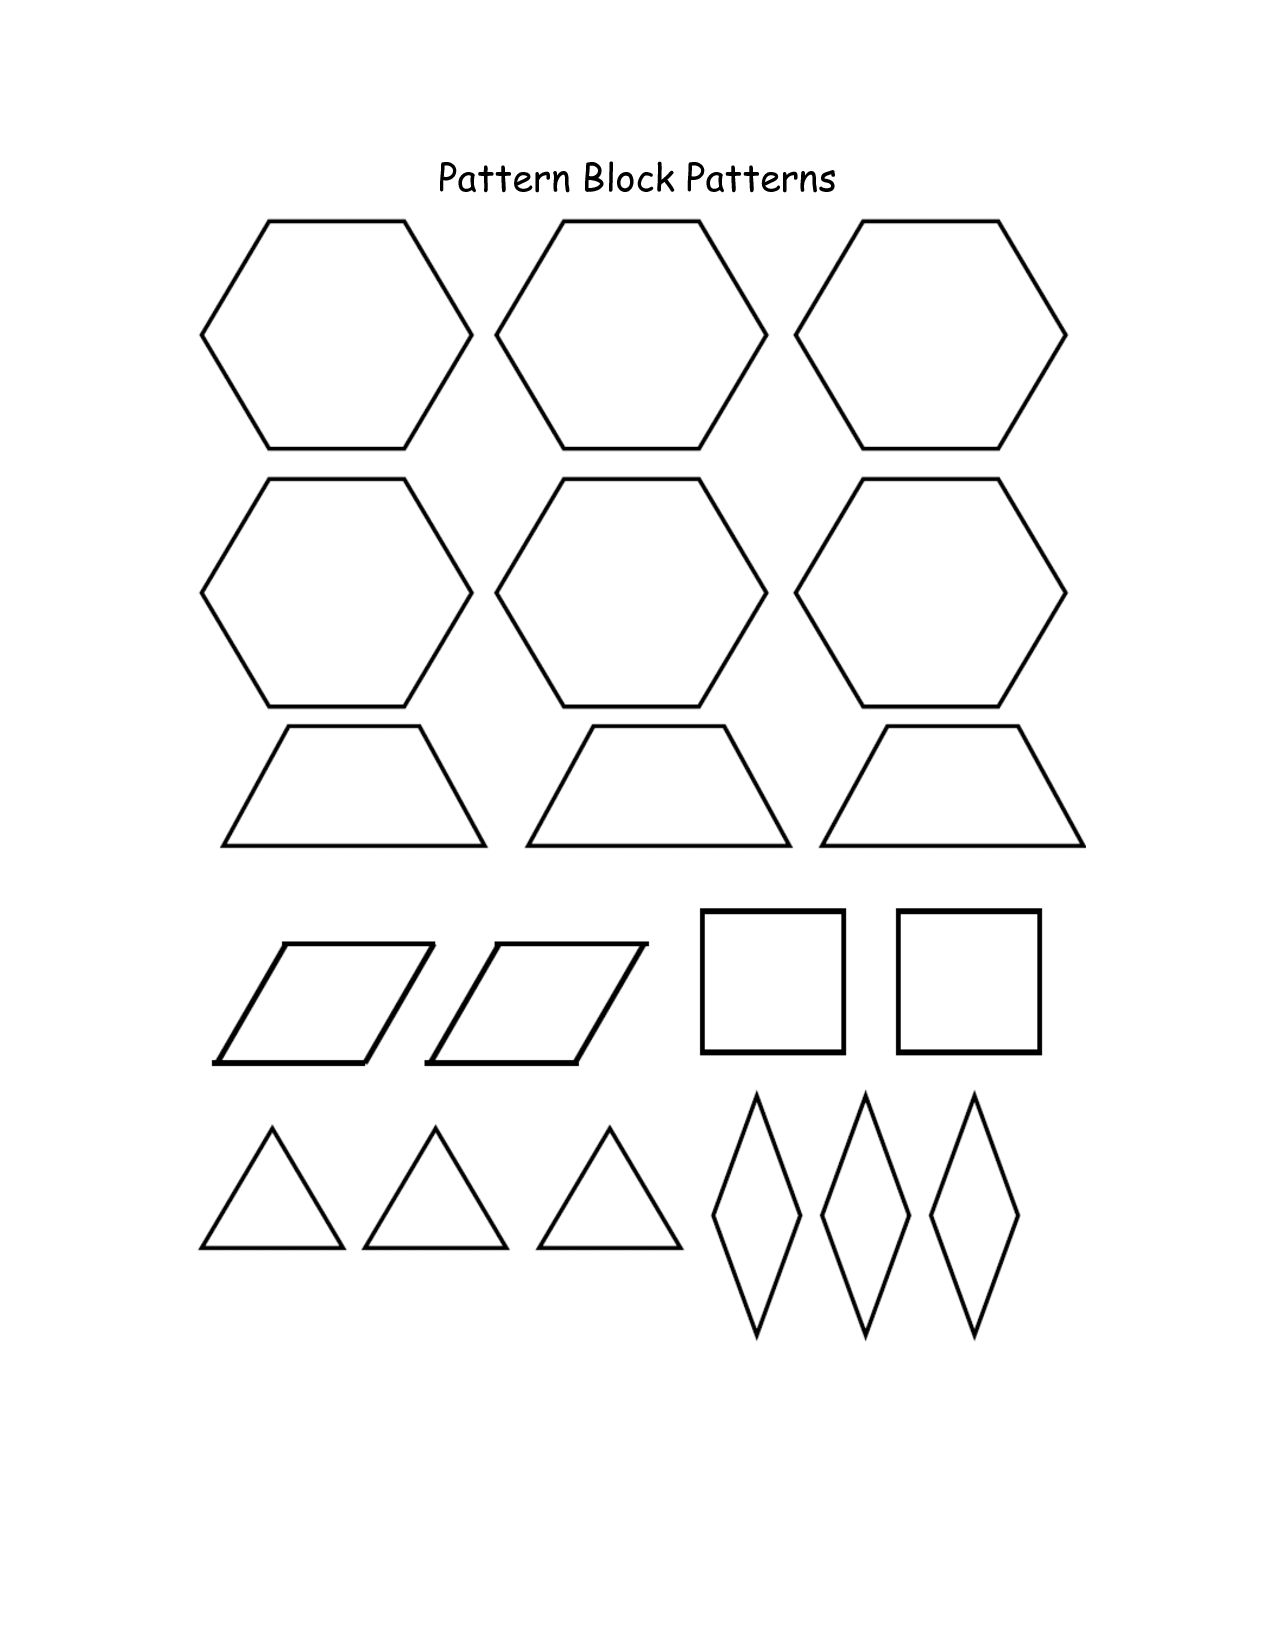 8 Images of Free Pattern Block Printables